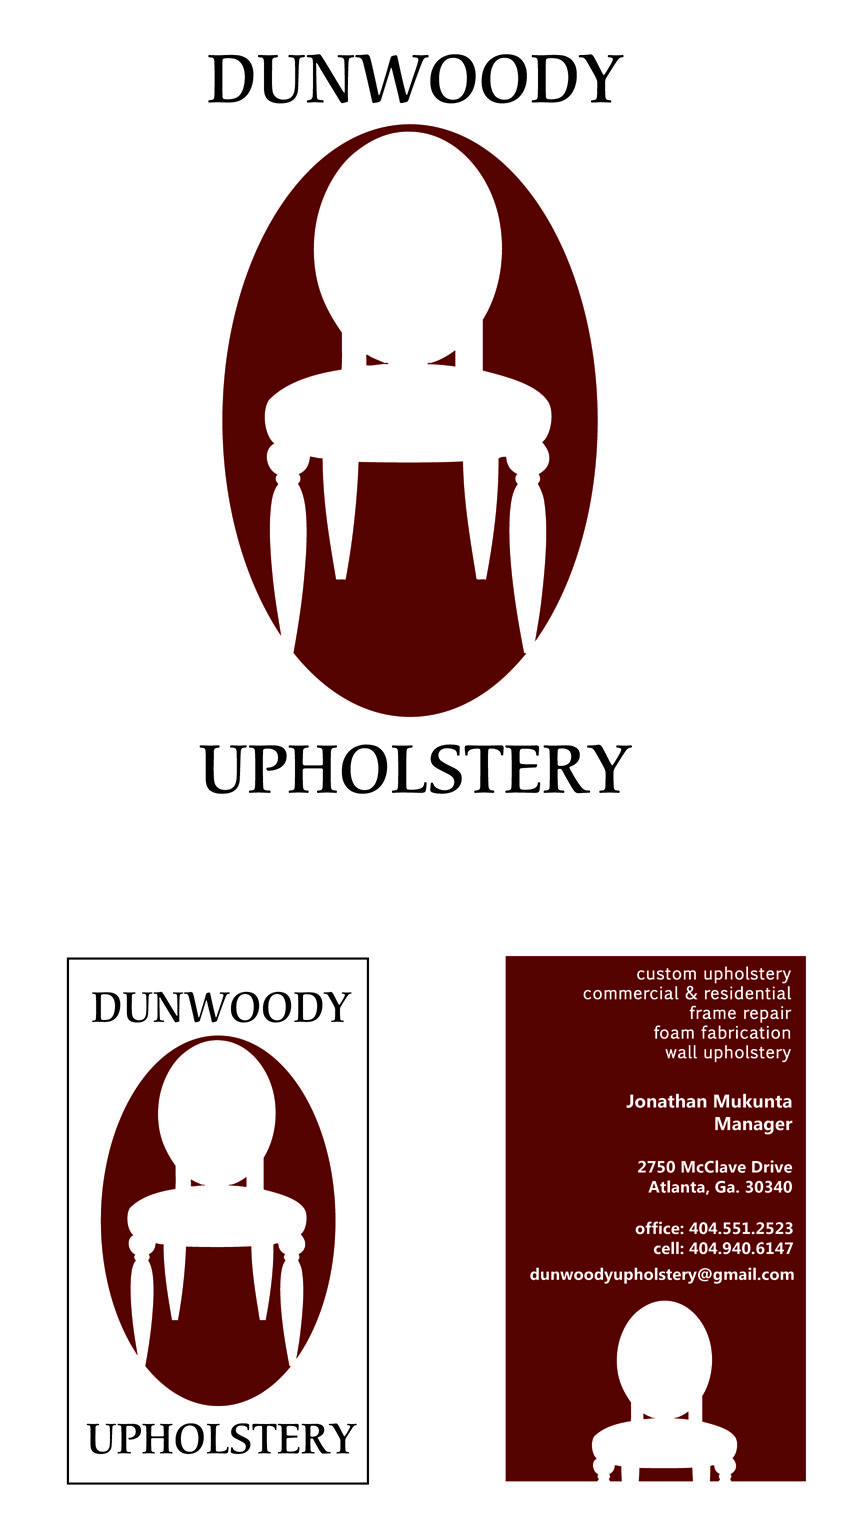 Final logo and business card design chosen for Dunwoody Upholstery ...